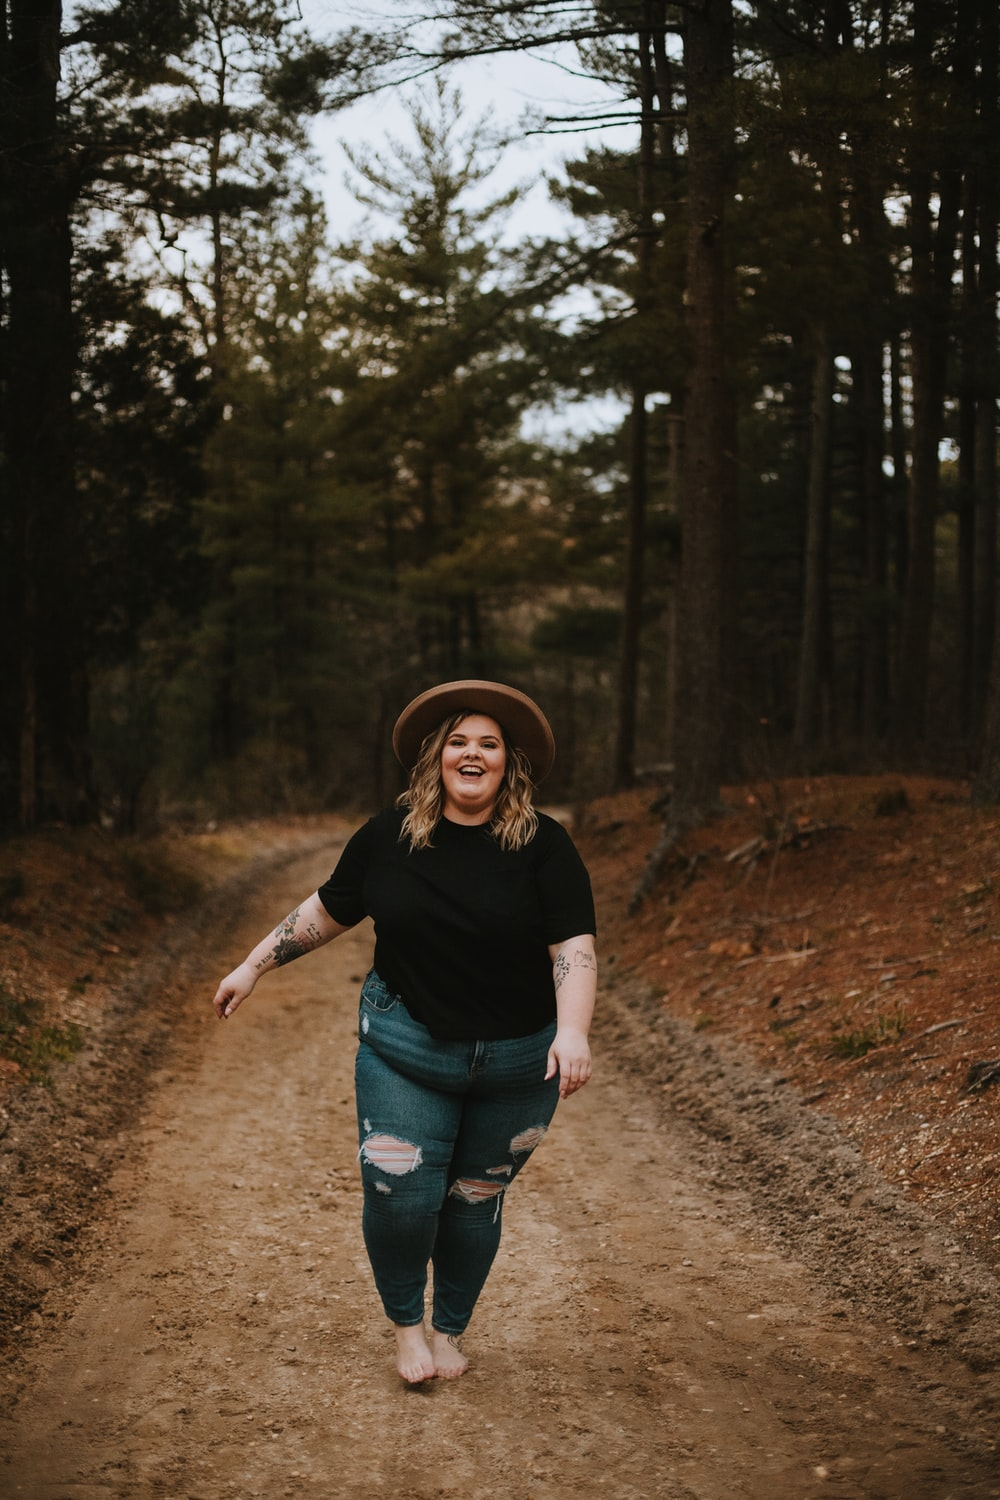 woman in black t-shirt and blue denim shorts standing on dirt road between trees during